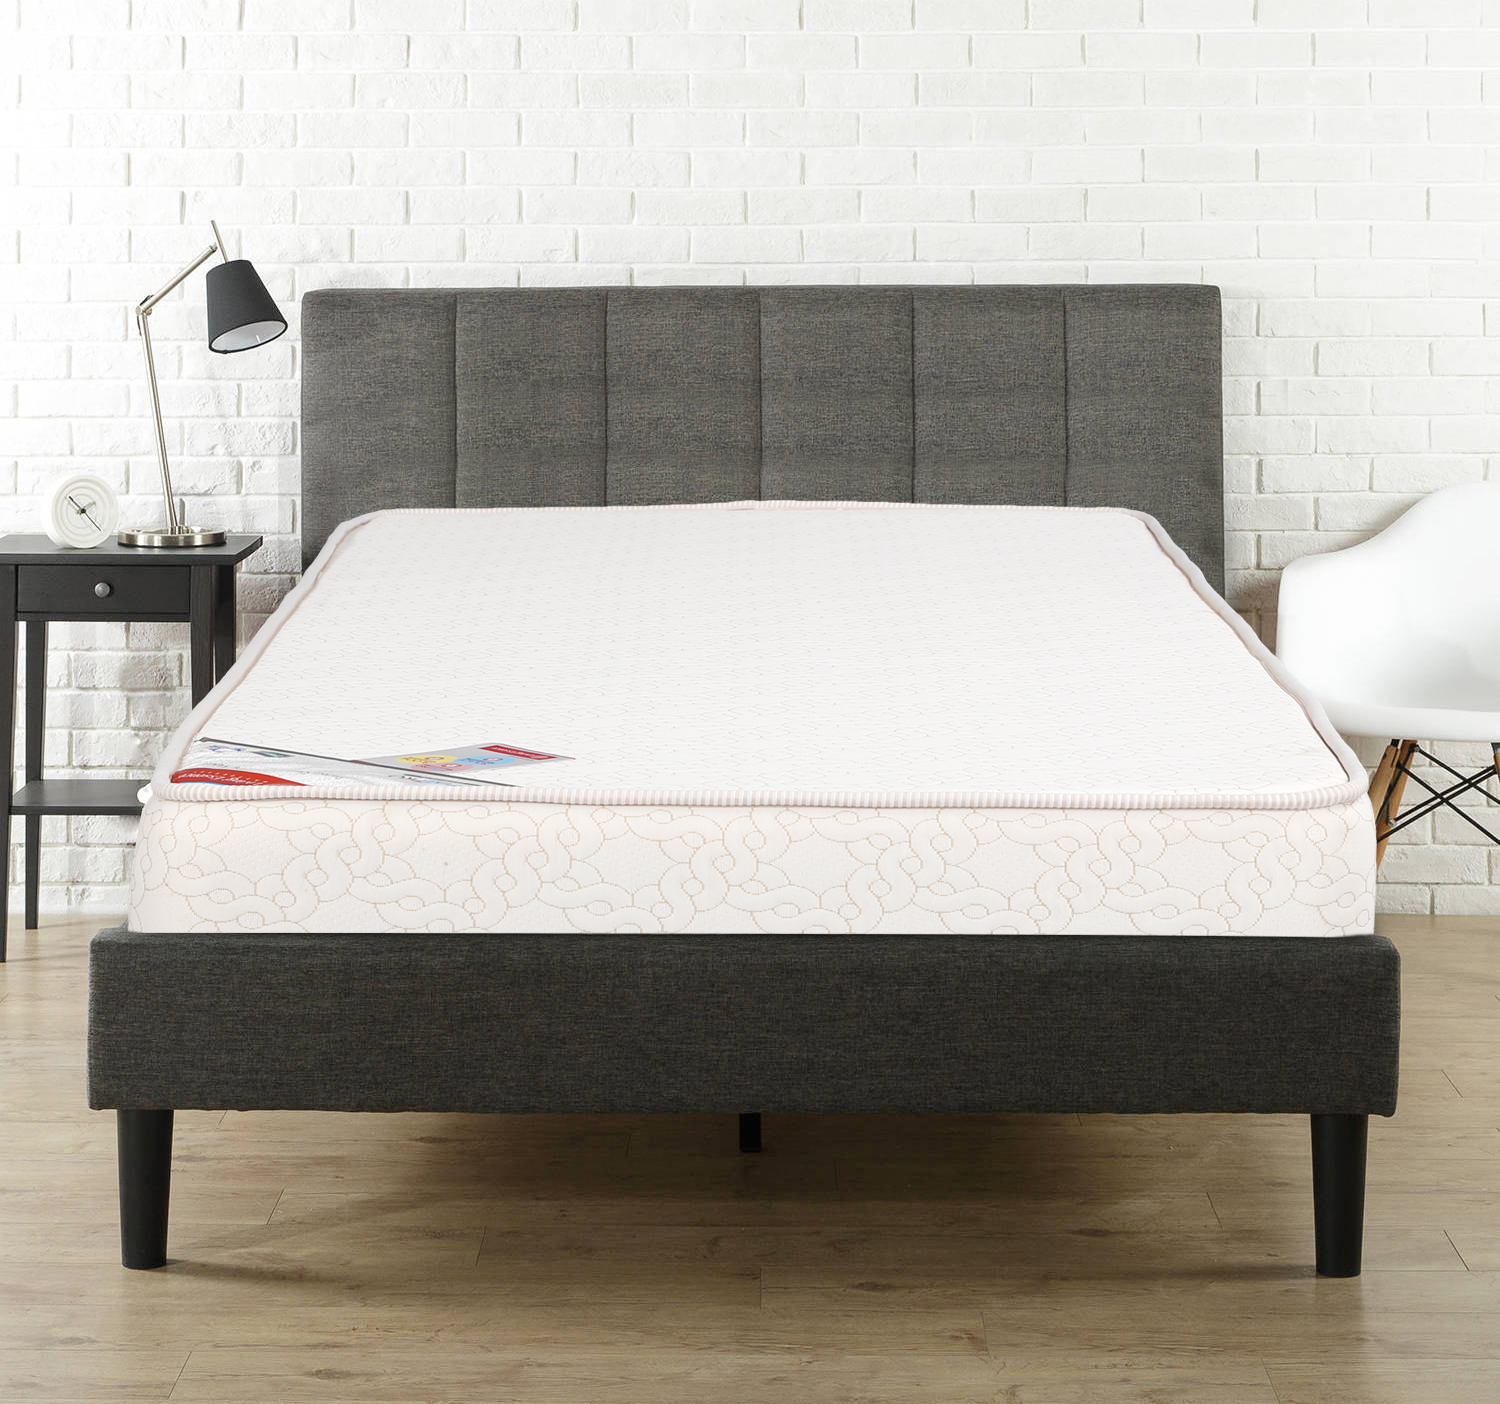 Majestic Pocket Spring Single Bed Mattress (75*36*6) in Cream Colour by HomeTown